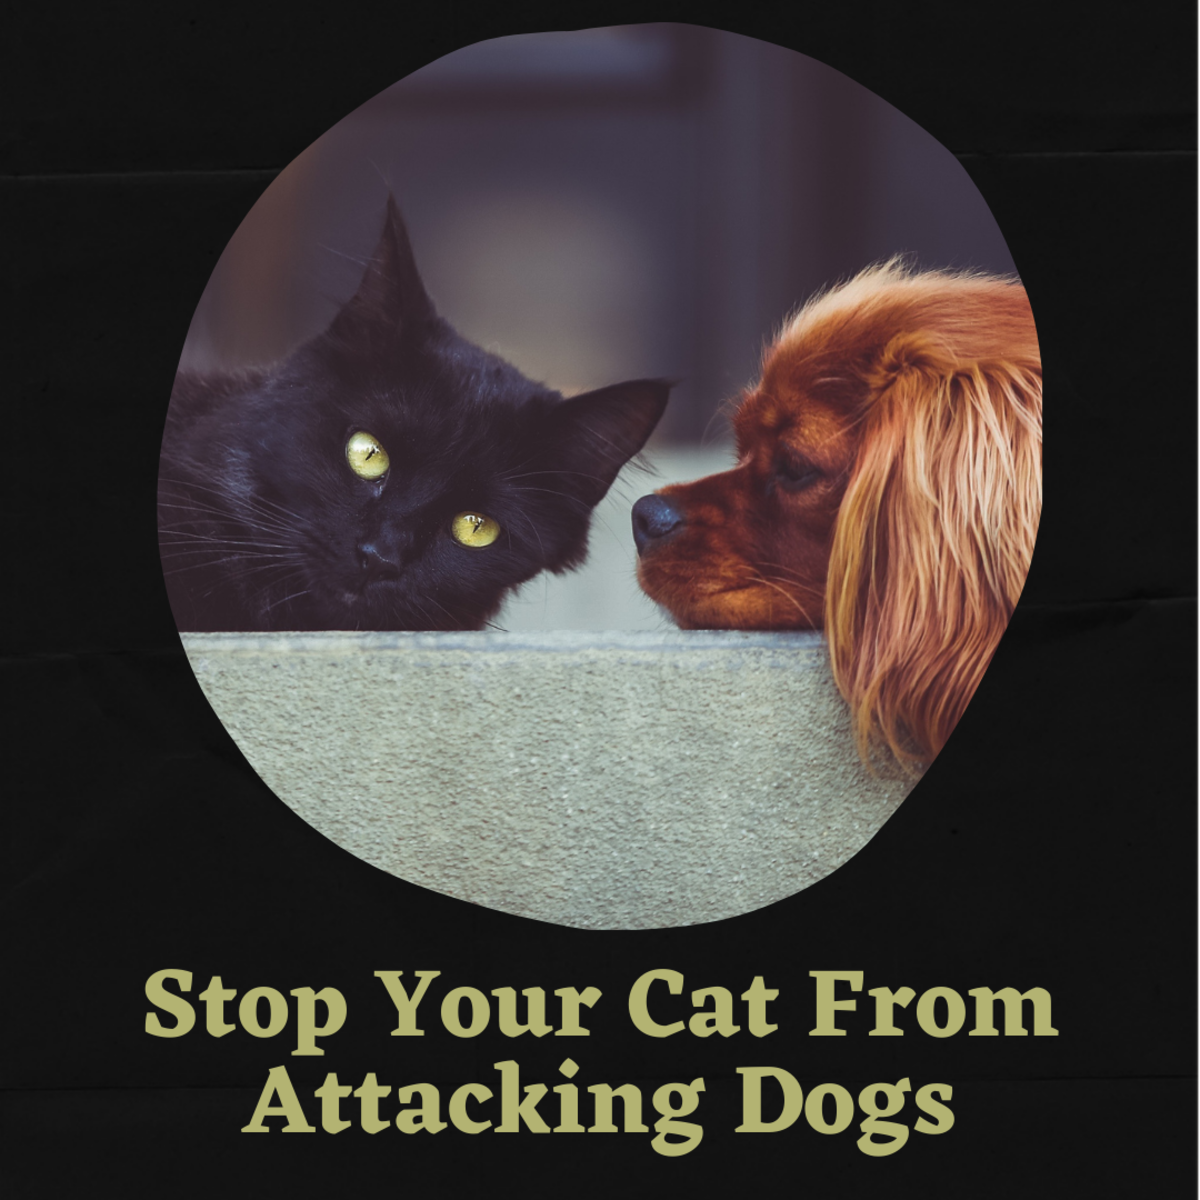 My cat hates my dog—what can I do about it?